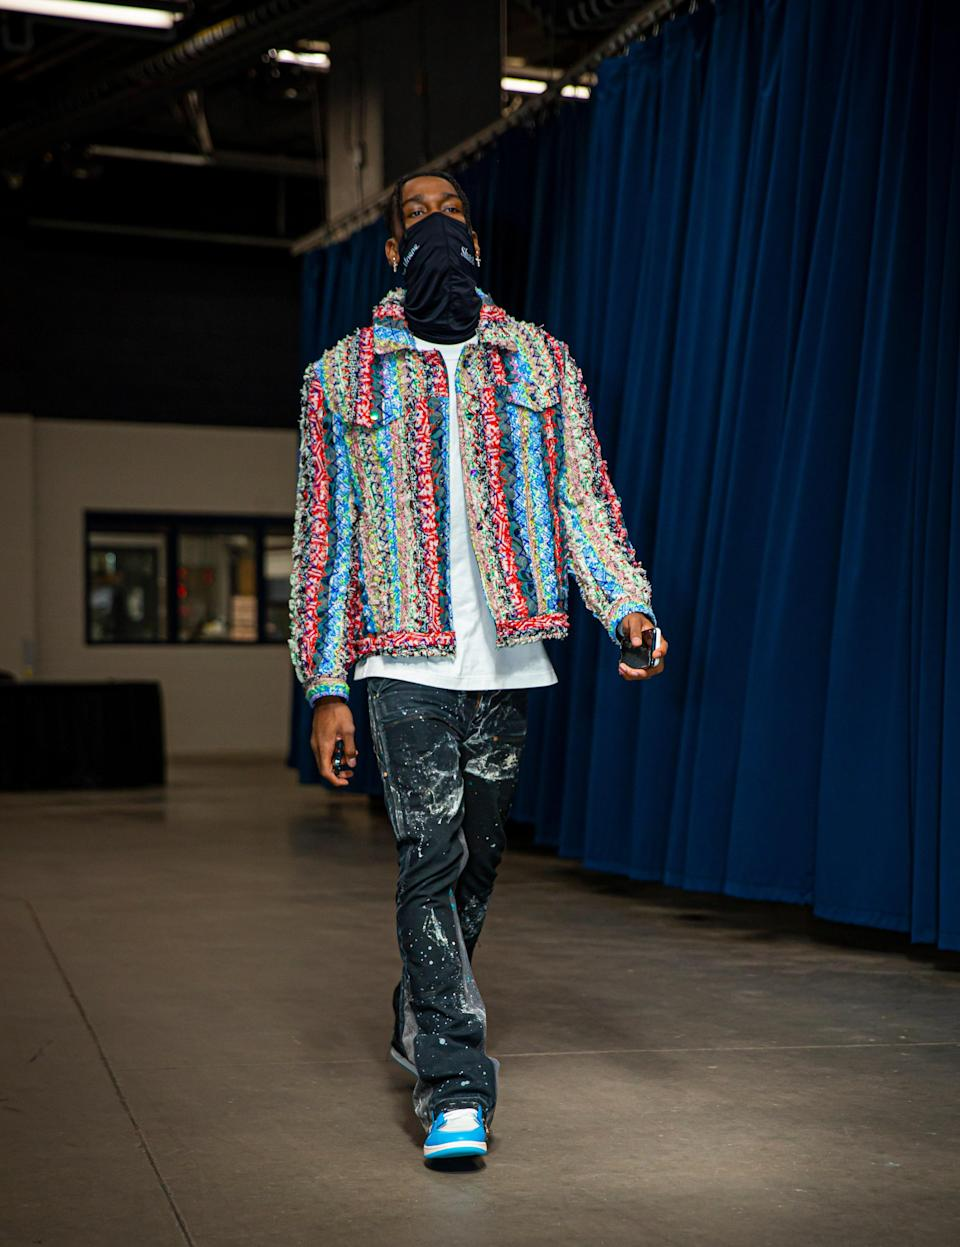 Shai Gilgeous-Alexander of the Oklahoma City Thunder arrives to a game against the Orlando Magic in Oklahoma City, December 29, 2020.